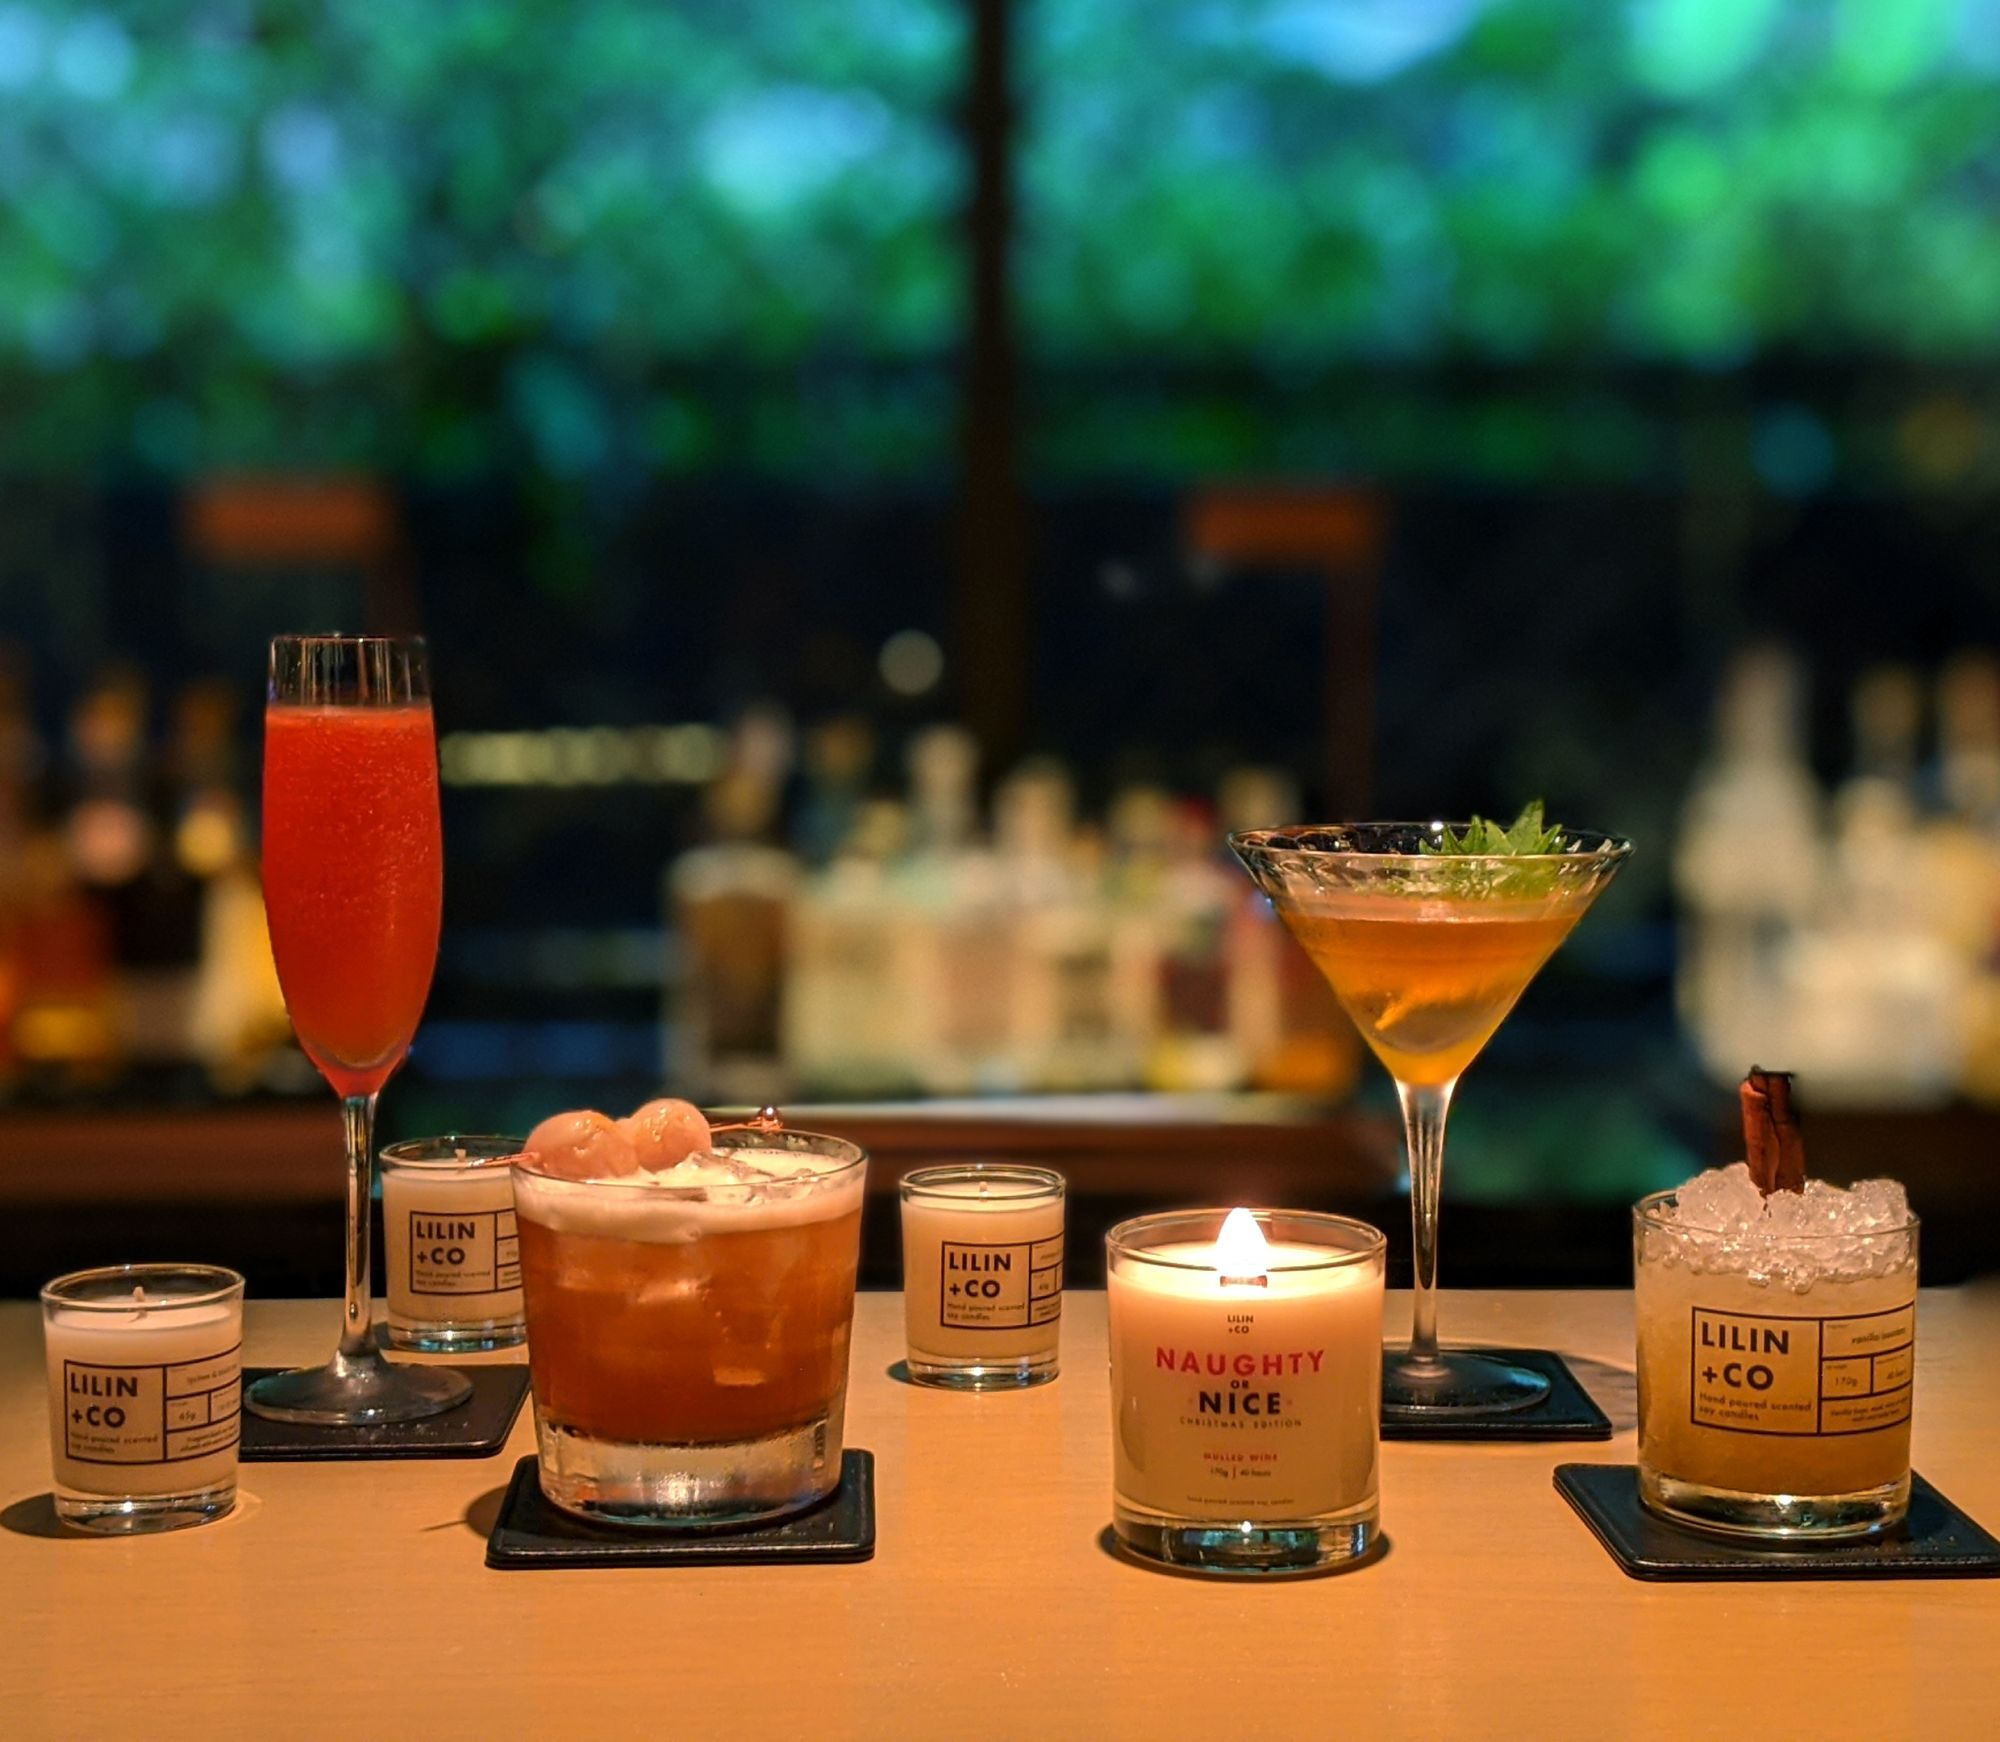 Cocktails Inspired By Lilin+Co Scented Candles At RuMa Hotel & Residences